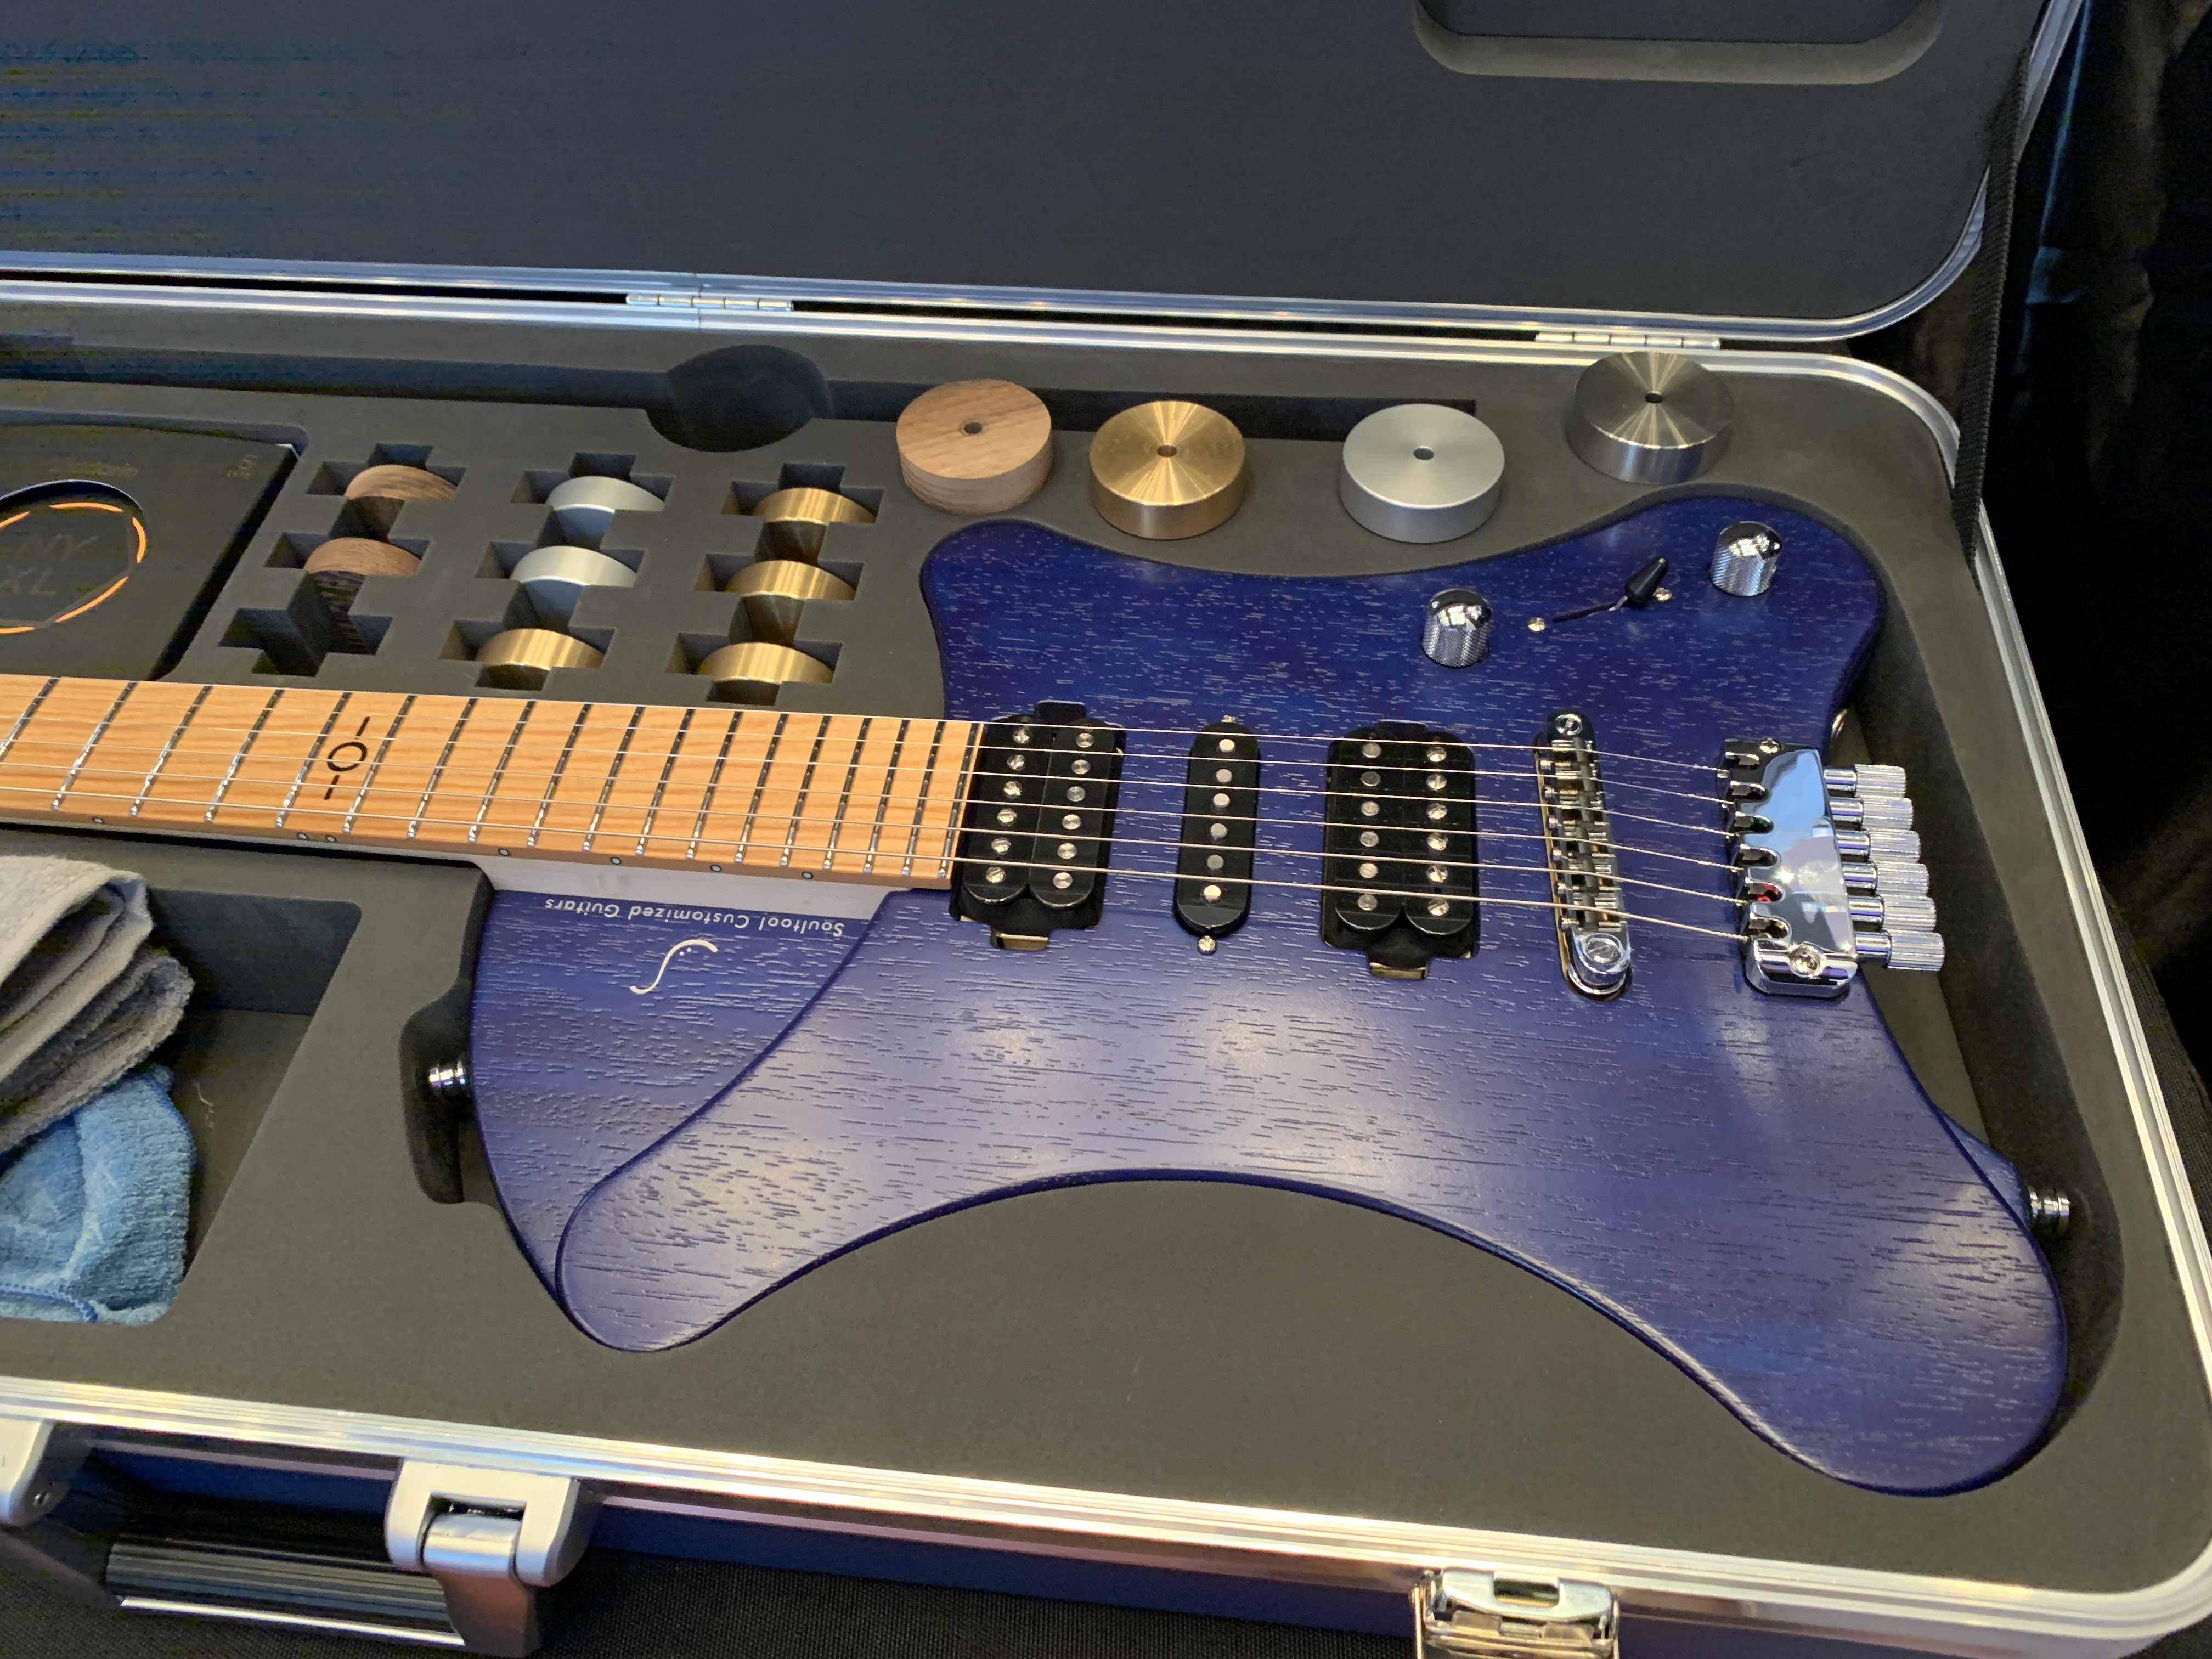 Soultool Guitars, Egon Rauscher luthier interview with an intriguing new guitar - The Guitar Channel